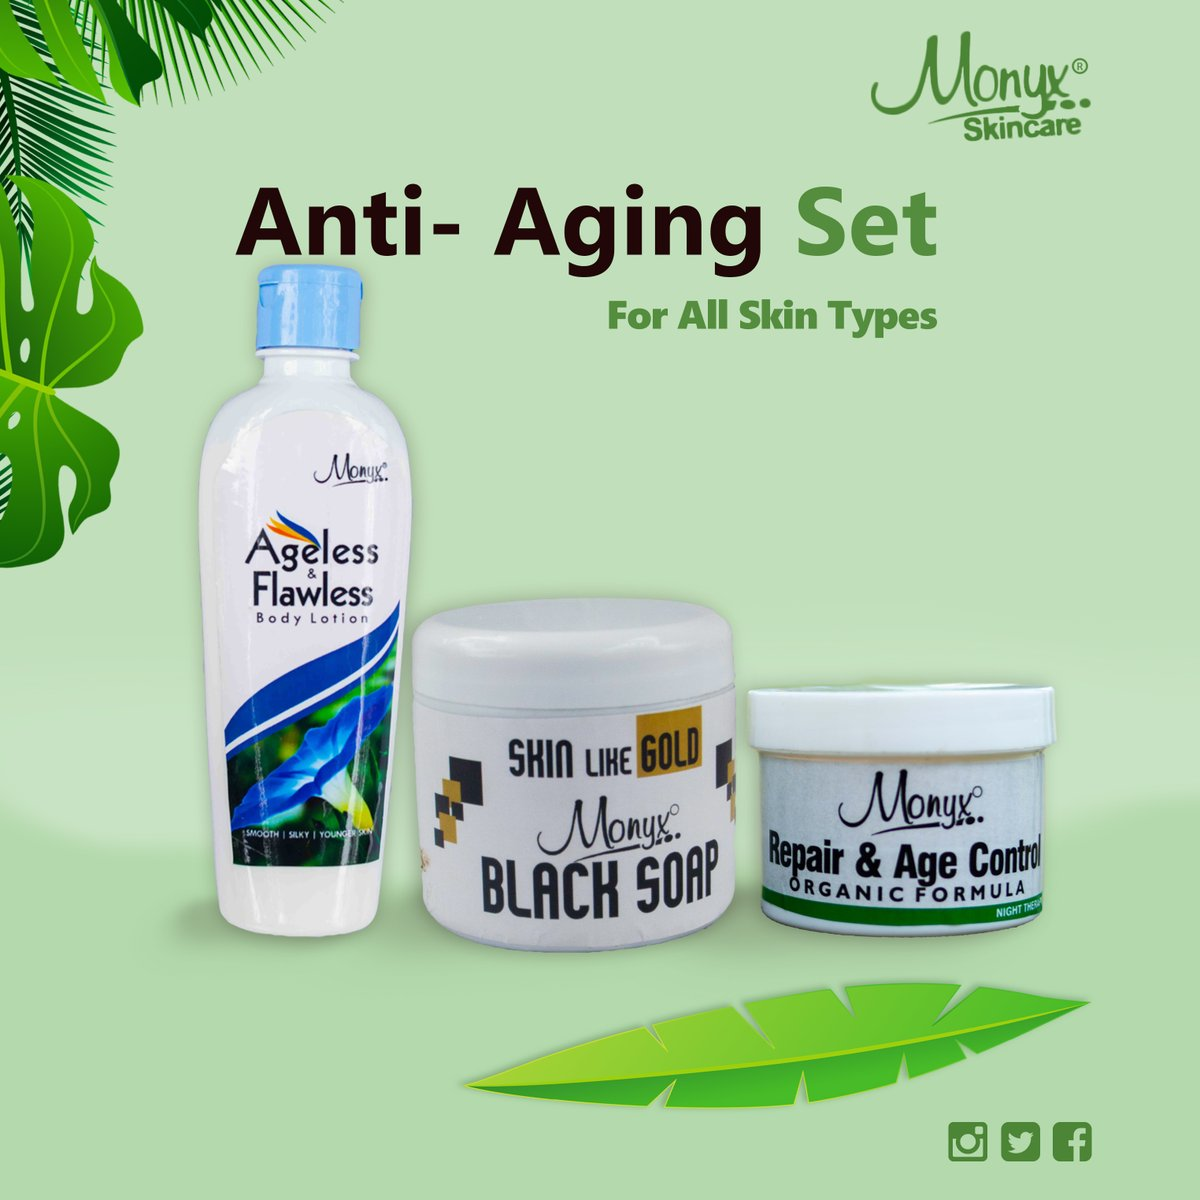 The functional anti- aging set Get and maintain your ageless, flawless glowing skin as The years go by